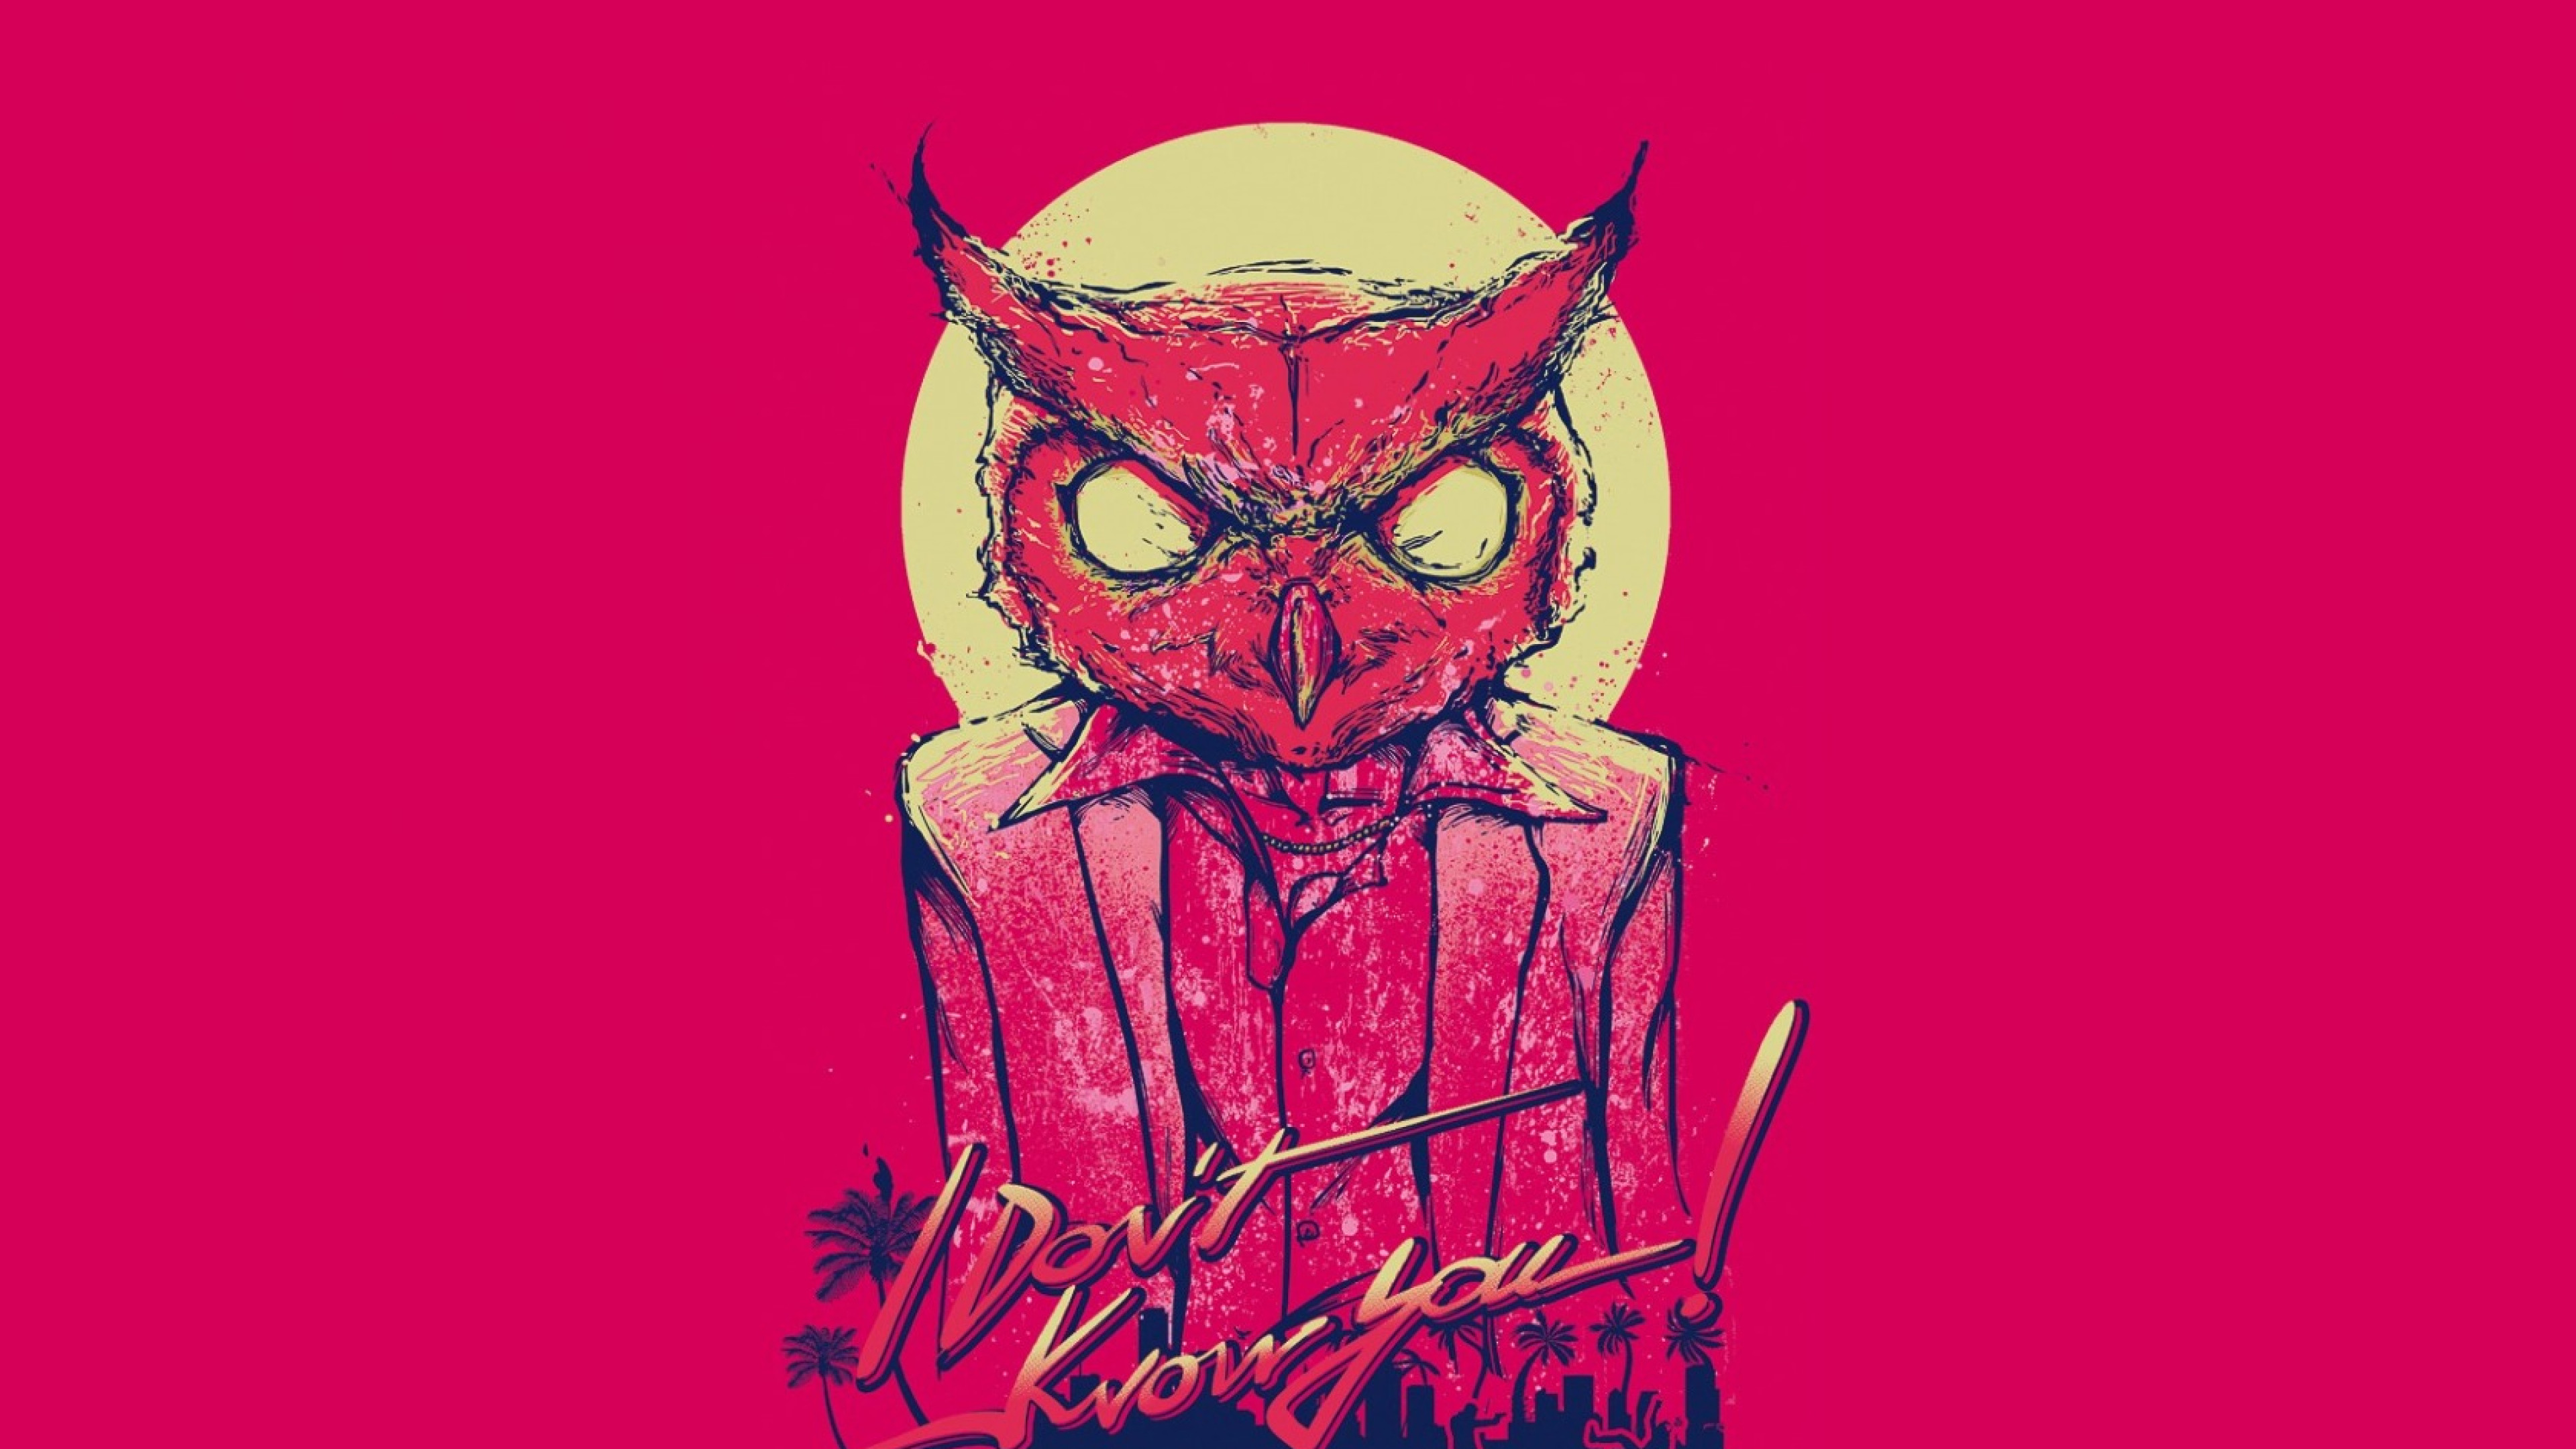 Video Hotline Miami 326204 Hd Wallpaper Backgrounds